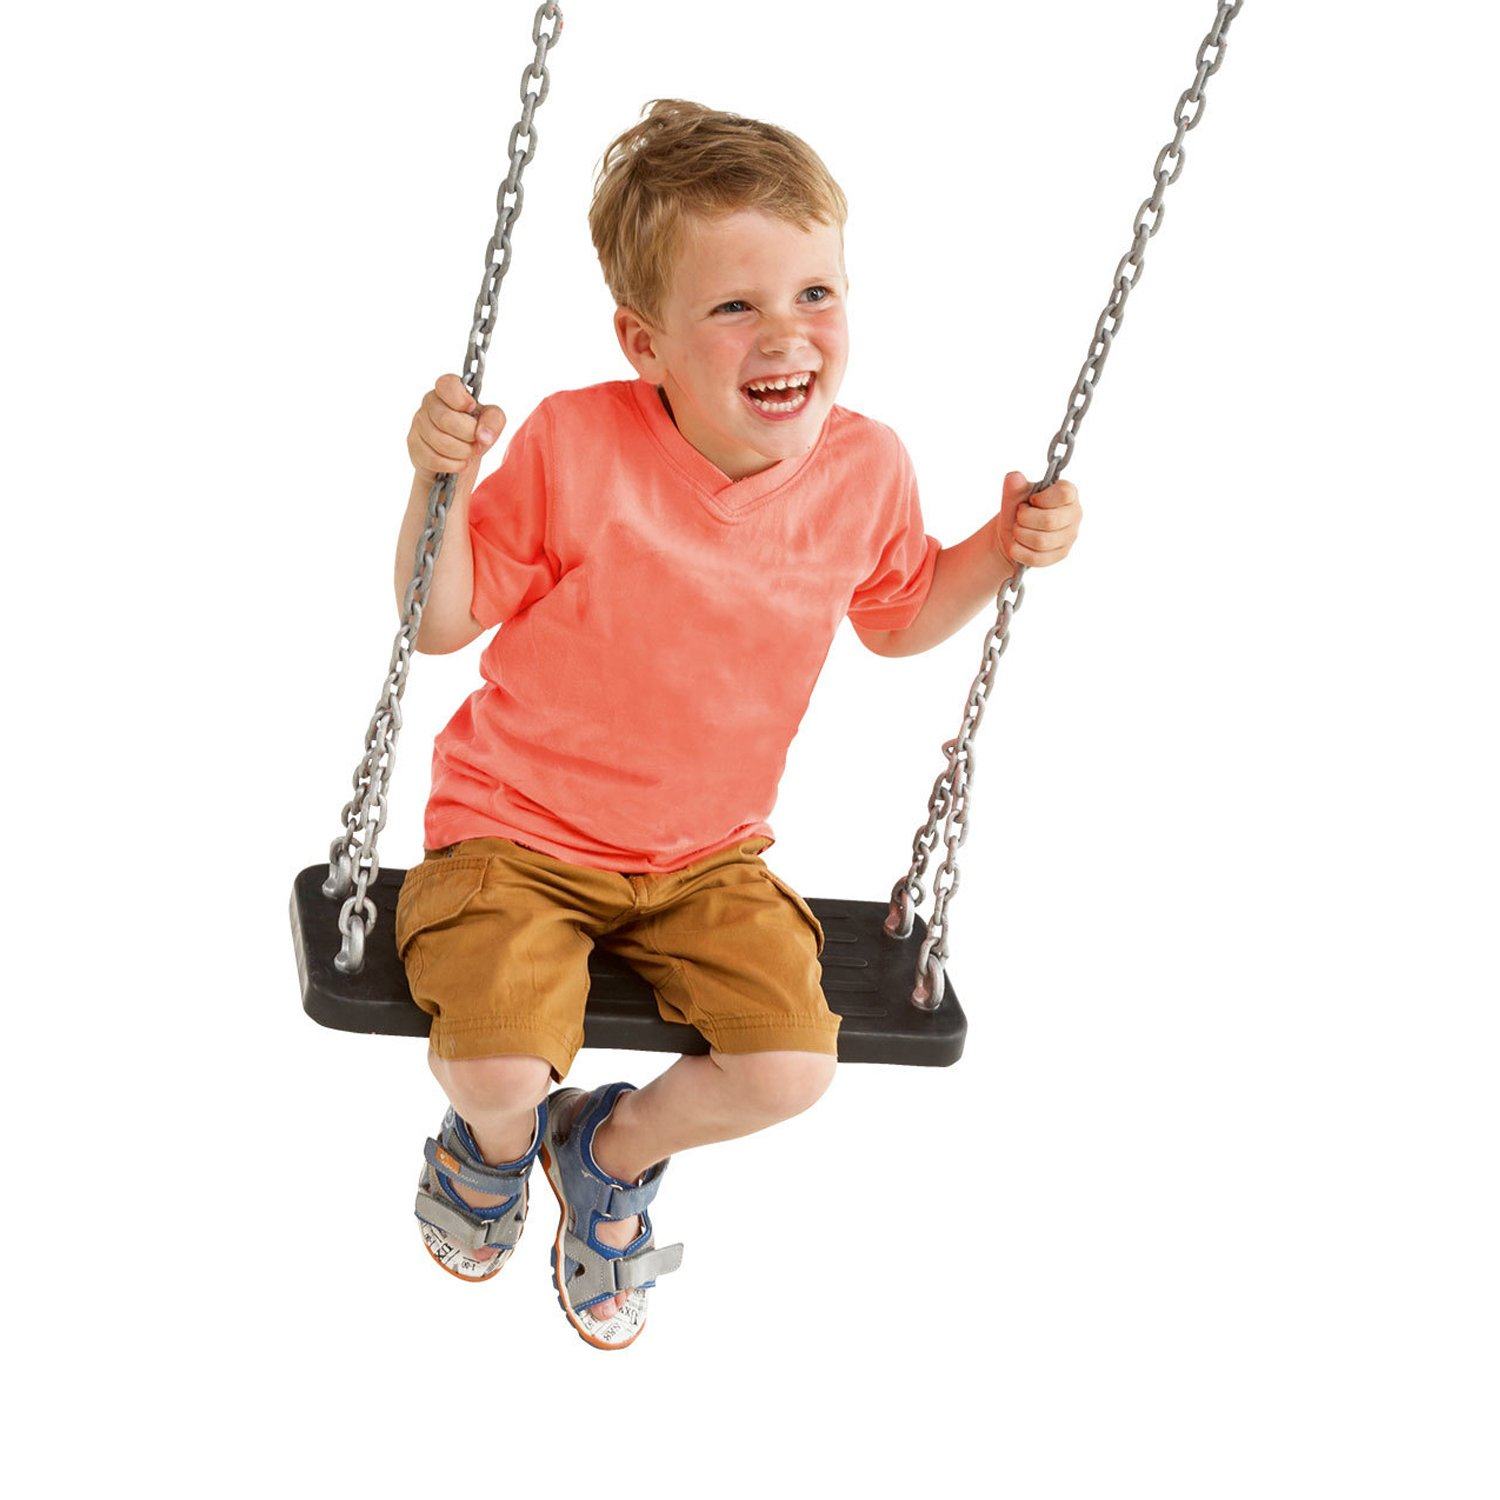 Garden Games Rubber Swing Seat with Steel Chains